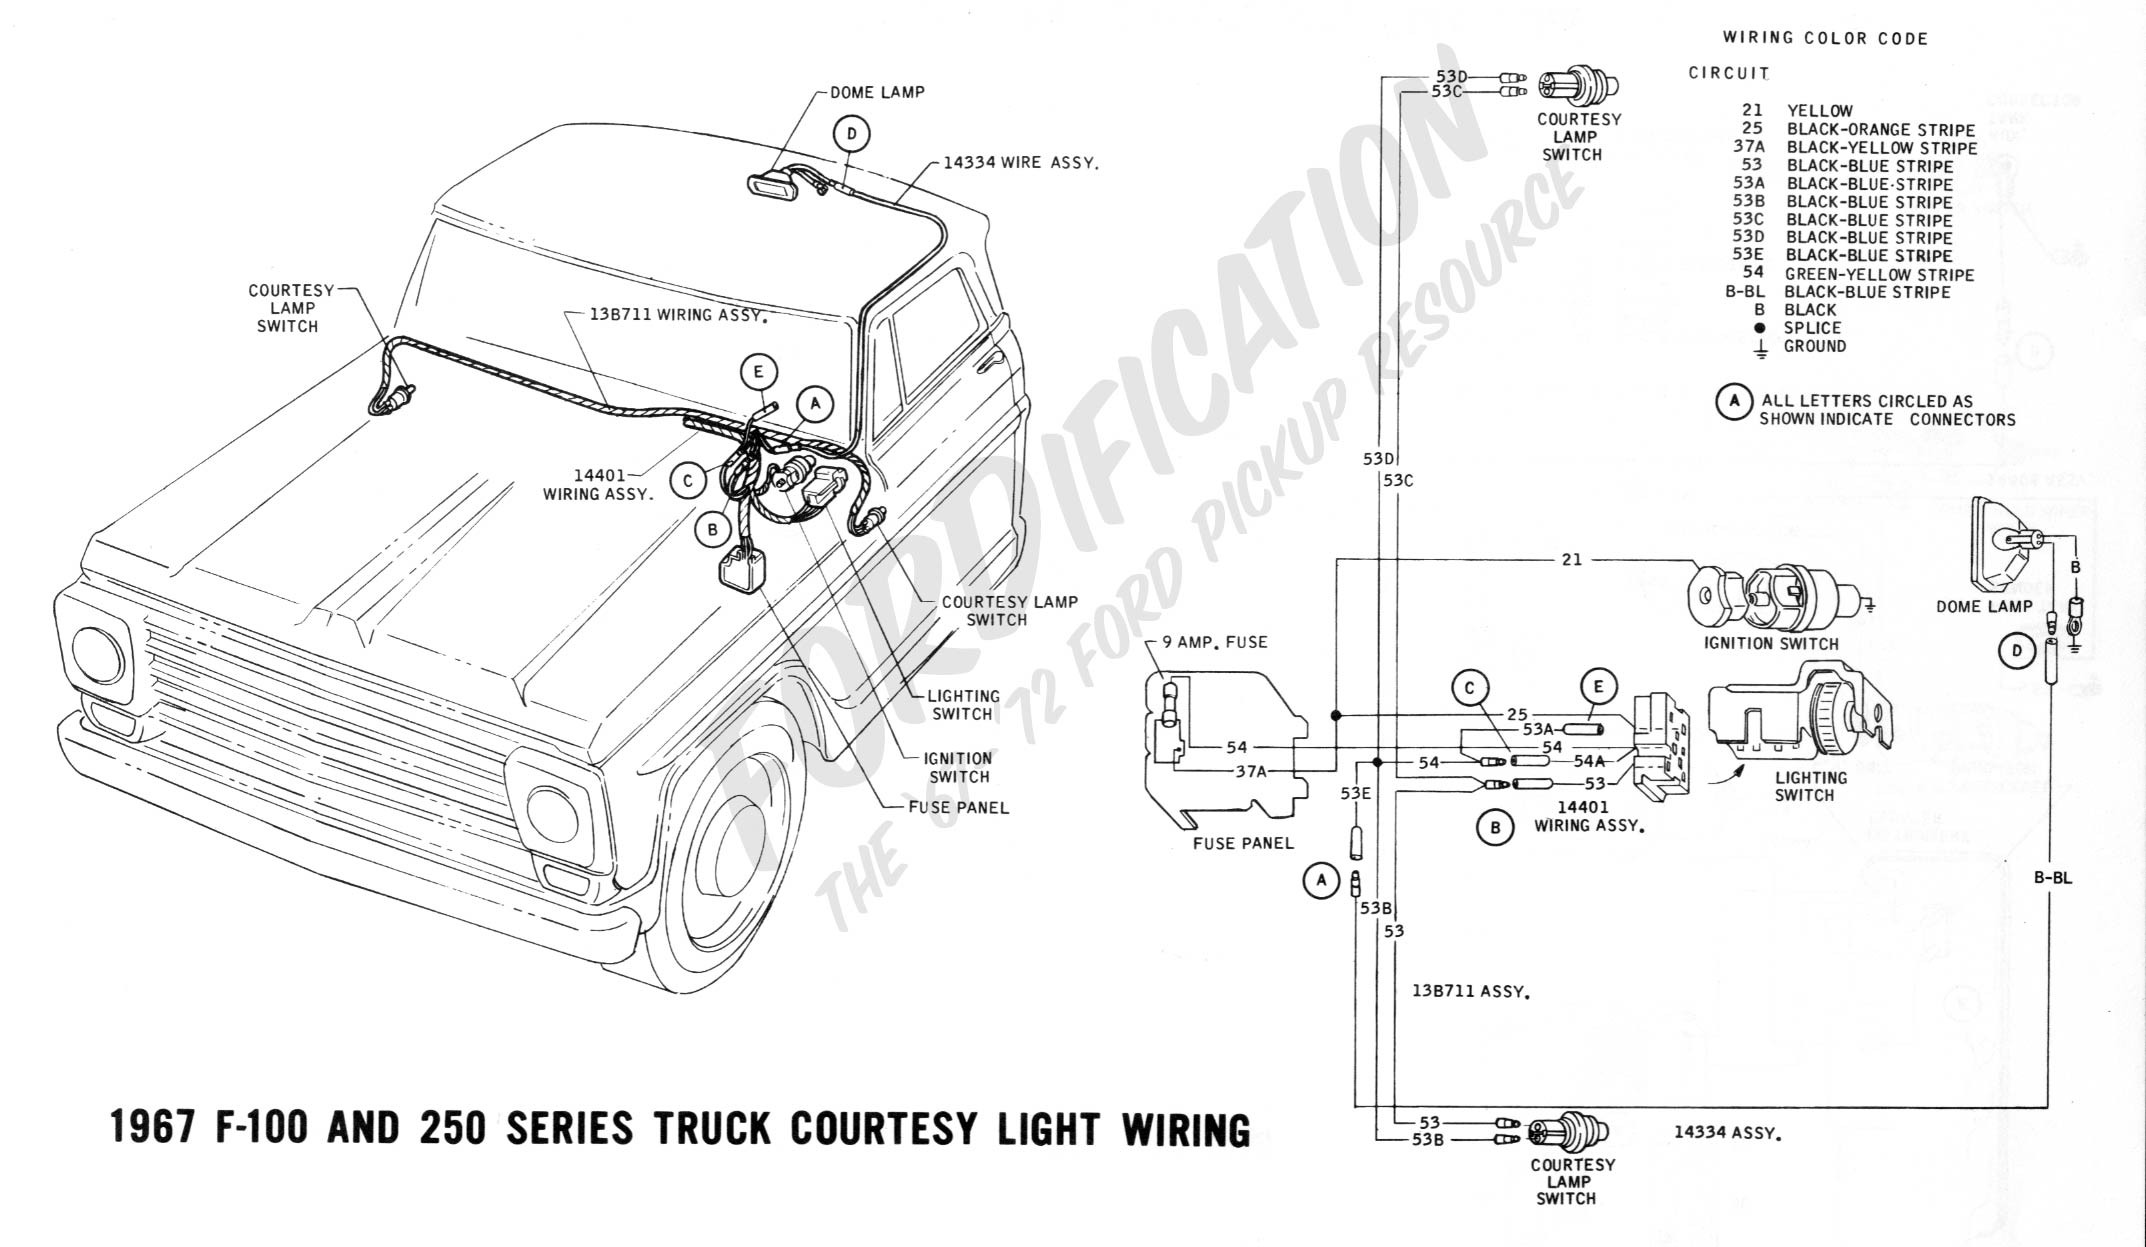 Small Engine Ignition Switch Wiring Diagram ford Truck Technical Drawings and Schematics Section H Wiring Of Small Engine Ignition Switch Wiring Diagram